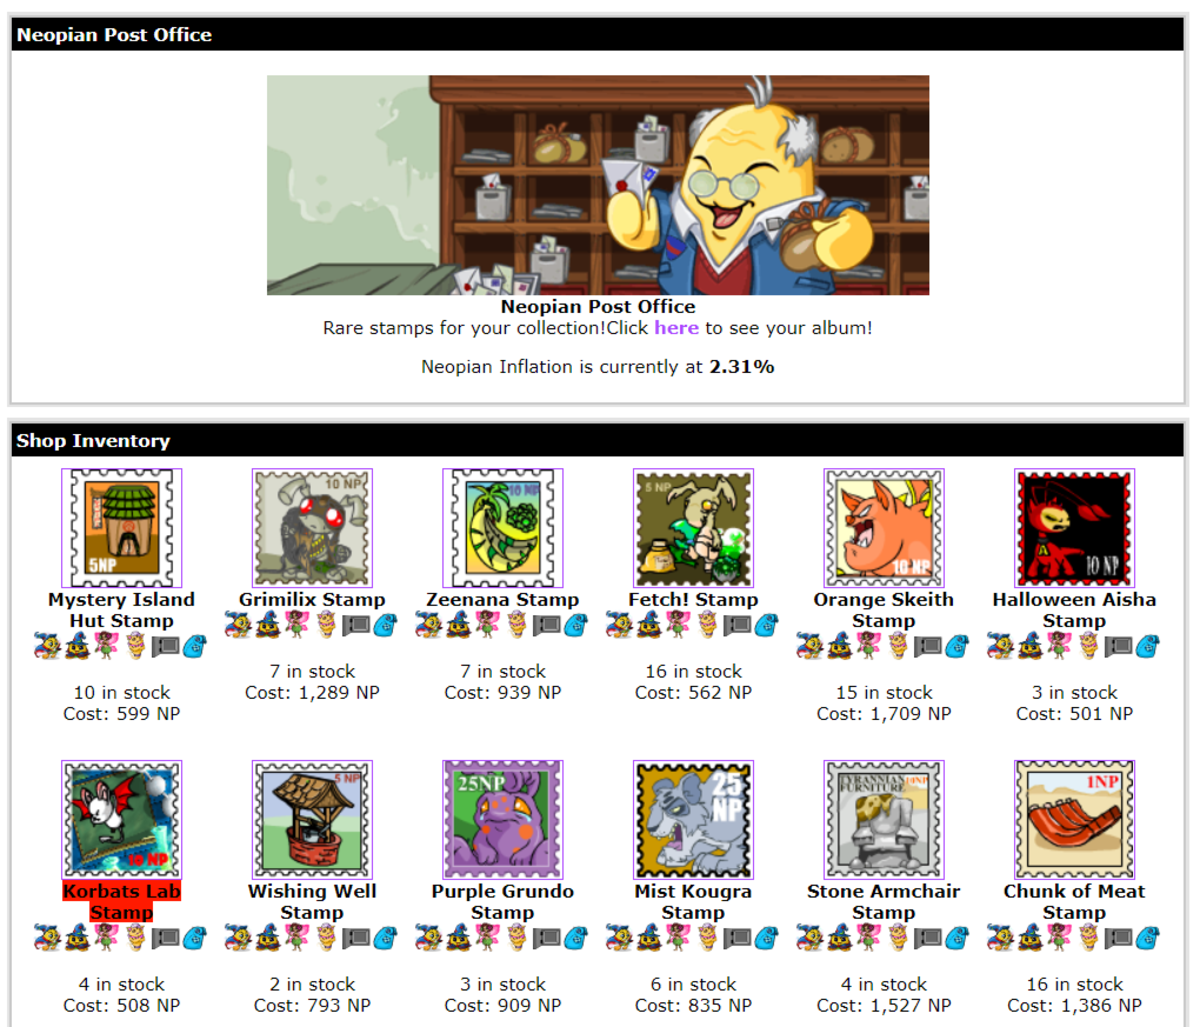 The Neopian Post Office is one of my personal favourite places to restock from!